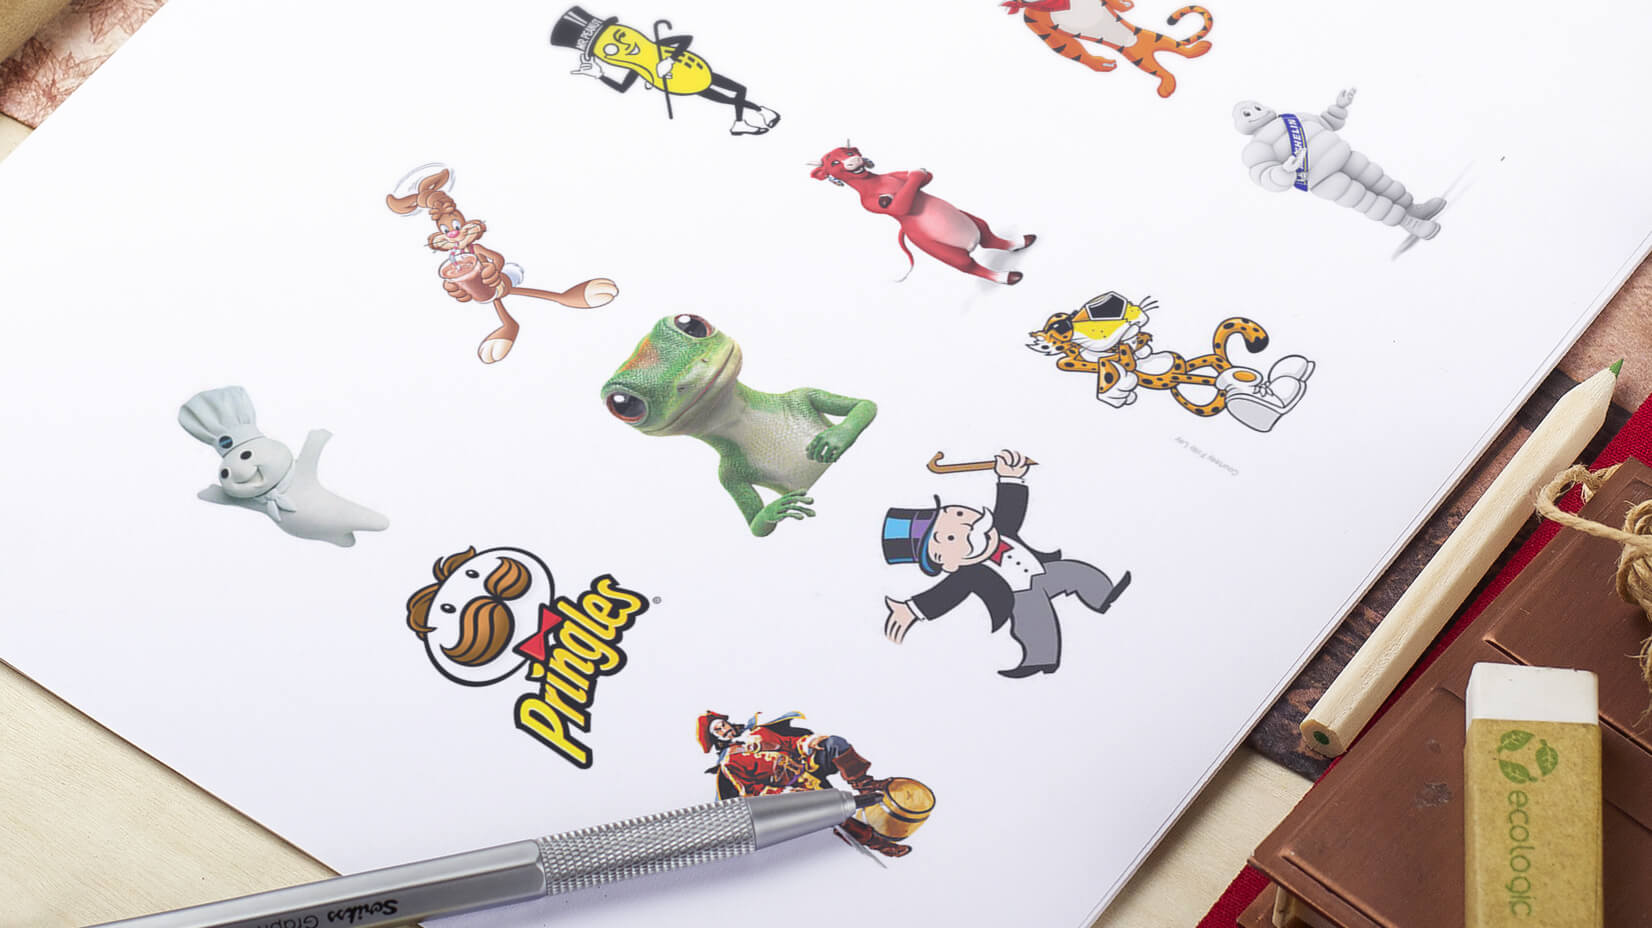 db7523cc9b6bb3 21 Most Famous Brand Mascot Designs of All Time